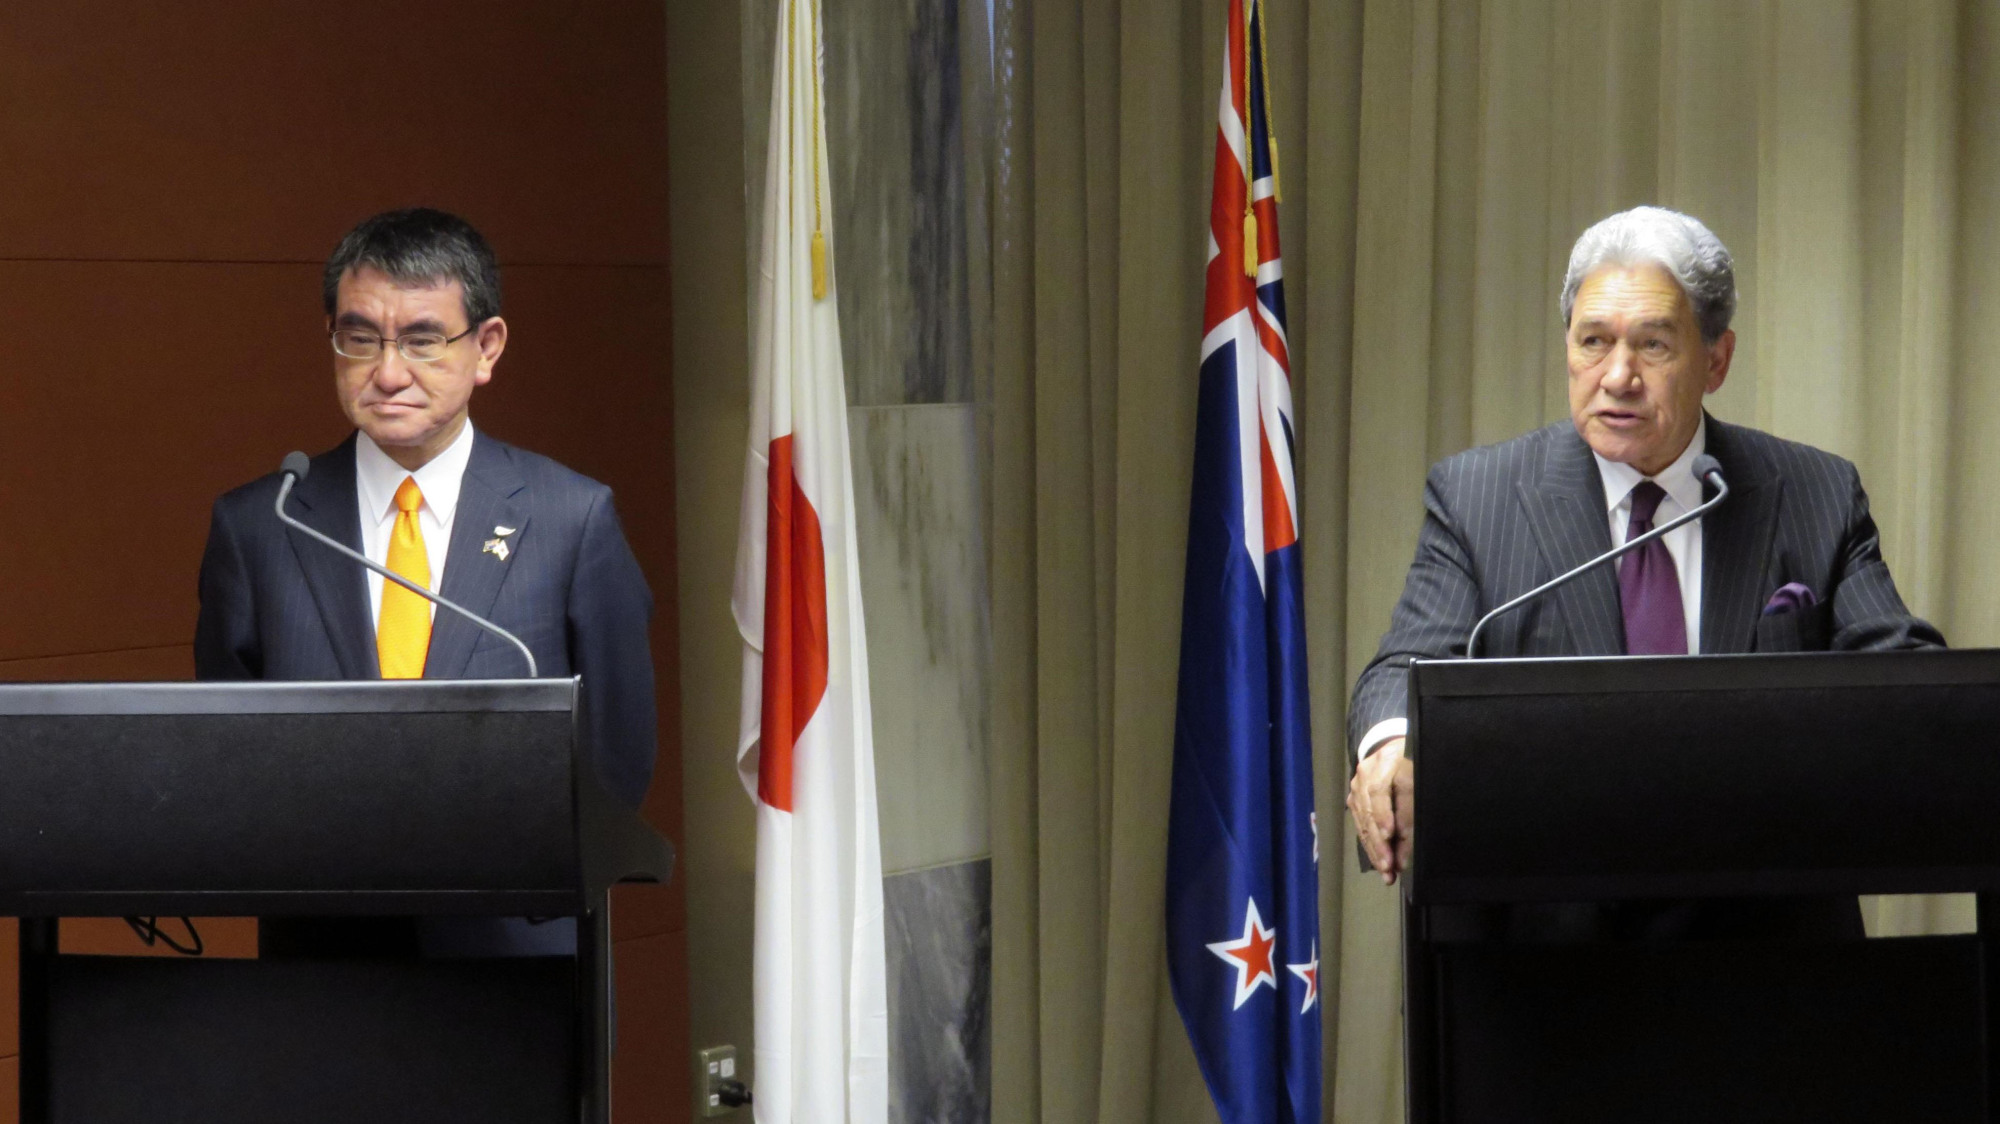 Foreign Minister Taro Kono and his New Zealand counterpart, Winston Peters, hold a joint news conference in Wellington on Monday. | KYODO